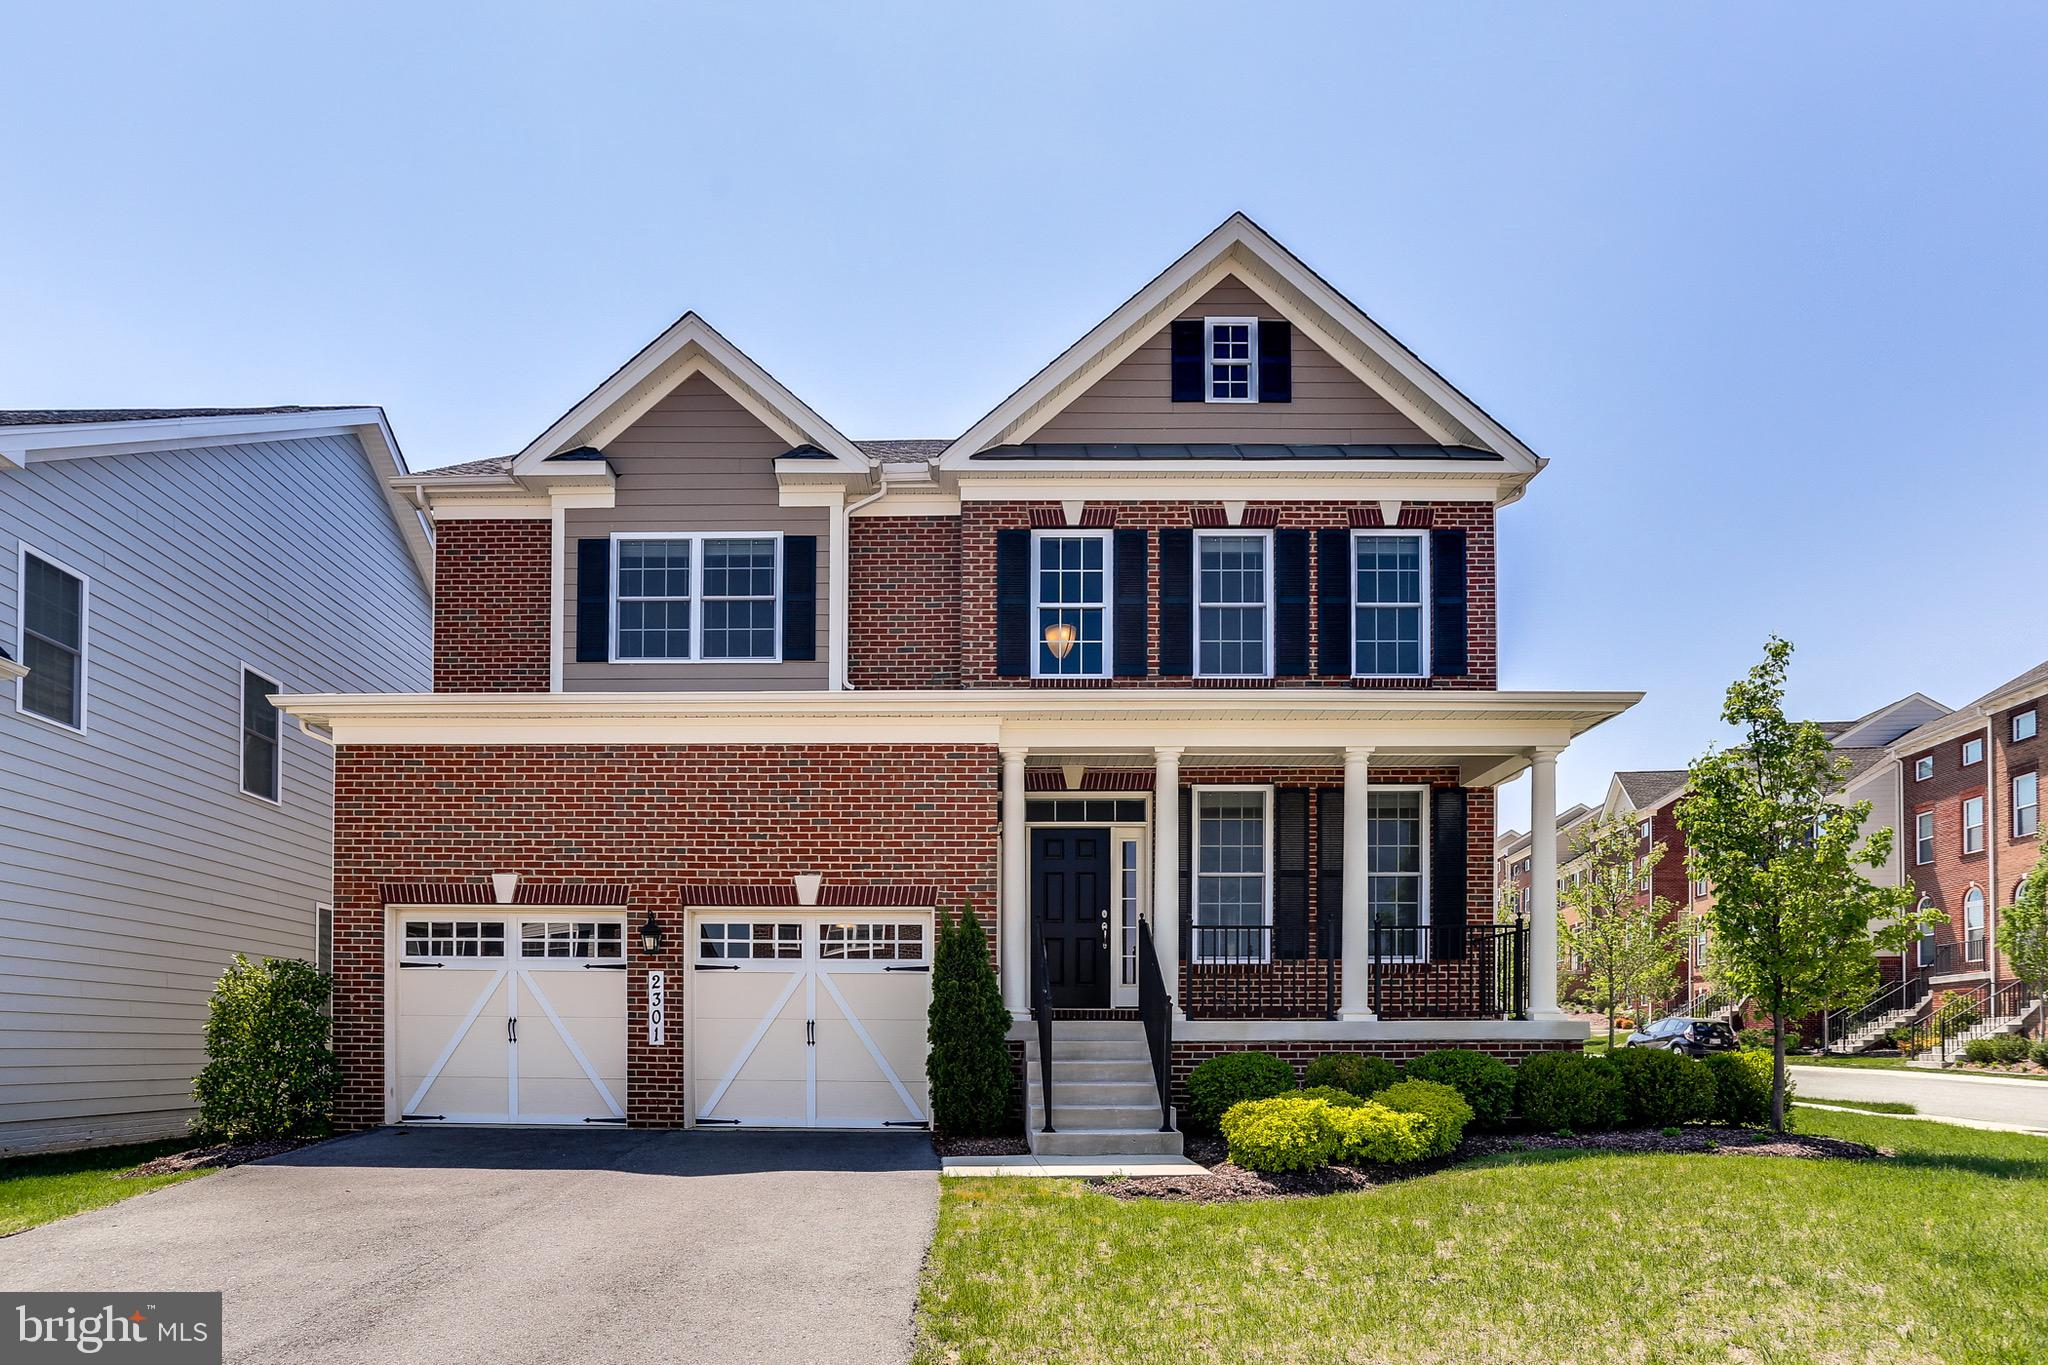 2301 SYCAMORE PLACE, HANOVER, MD 21076